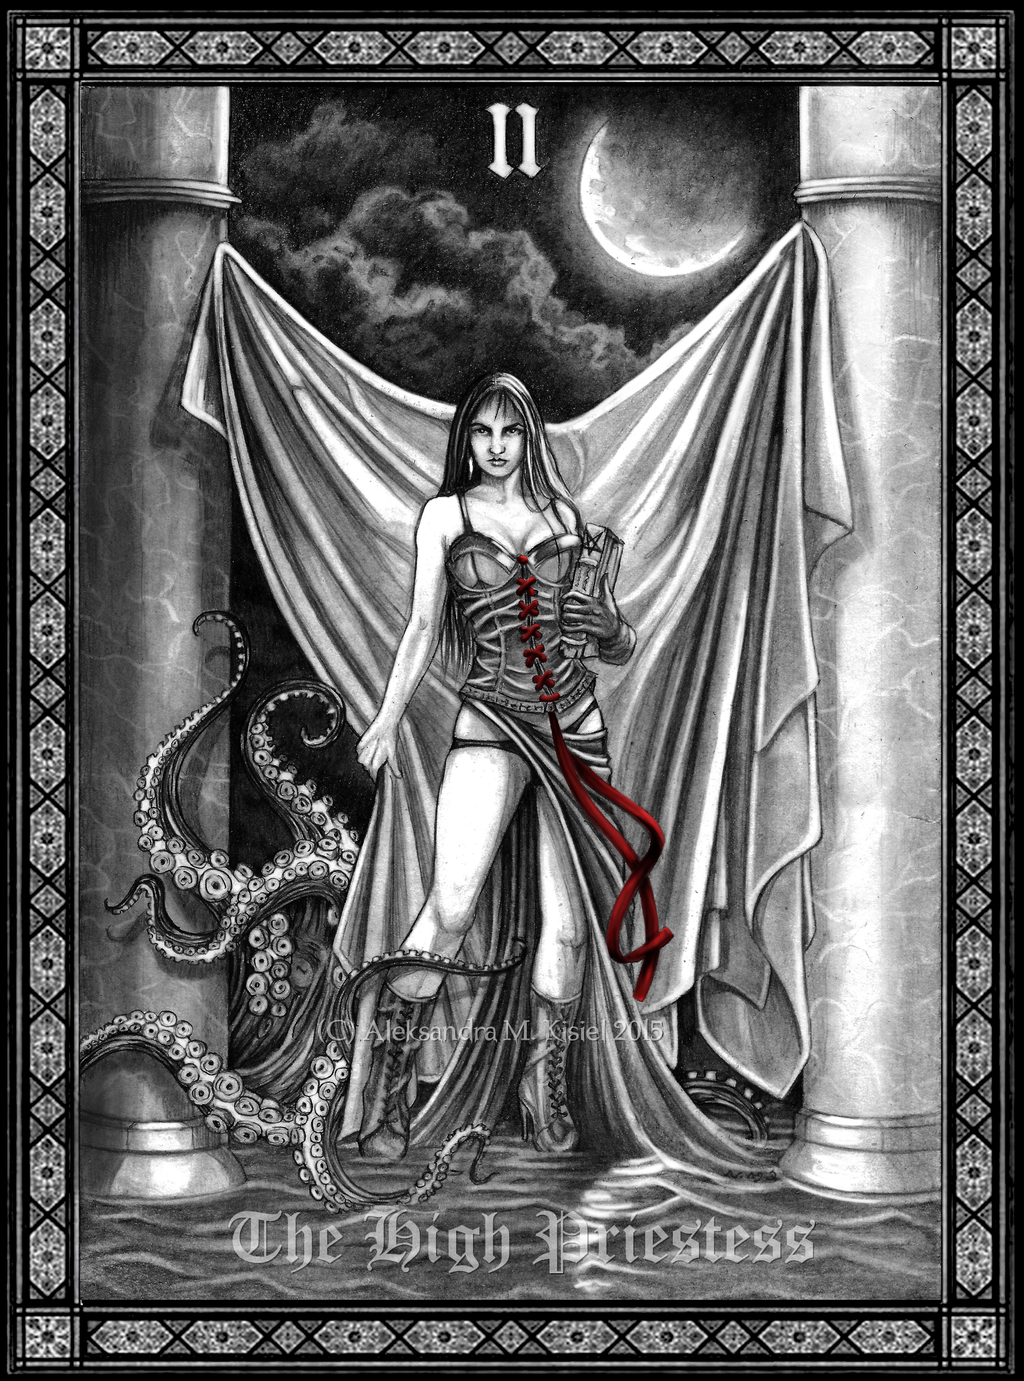 High Priestess Full Colorful Deck Major Stock Illustration: Tarot: The High Priestess By Doberlady On DeviantArt